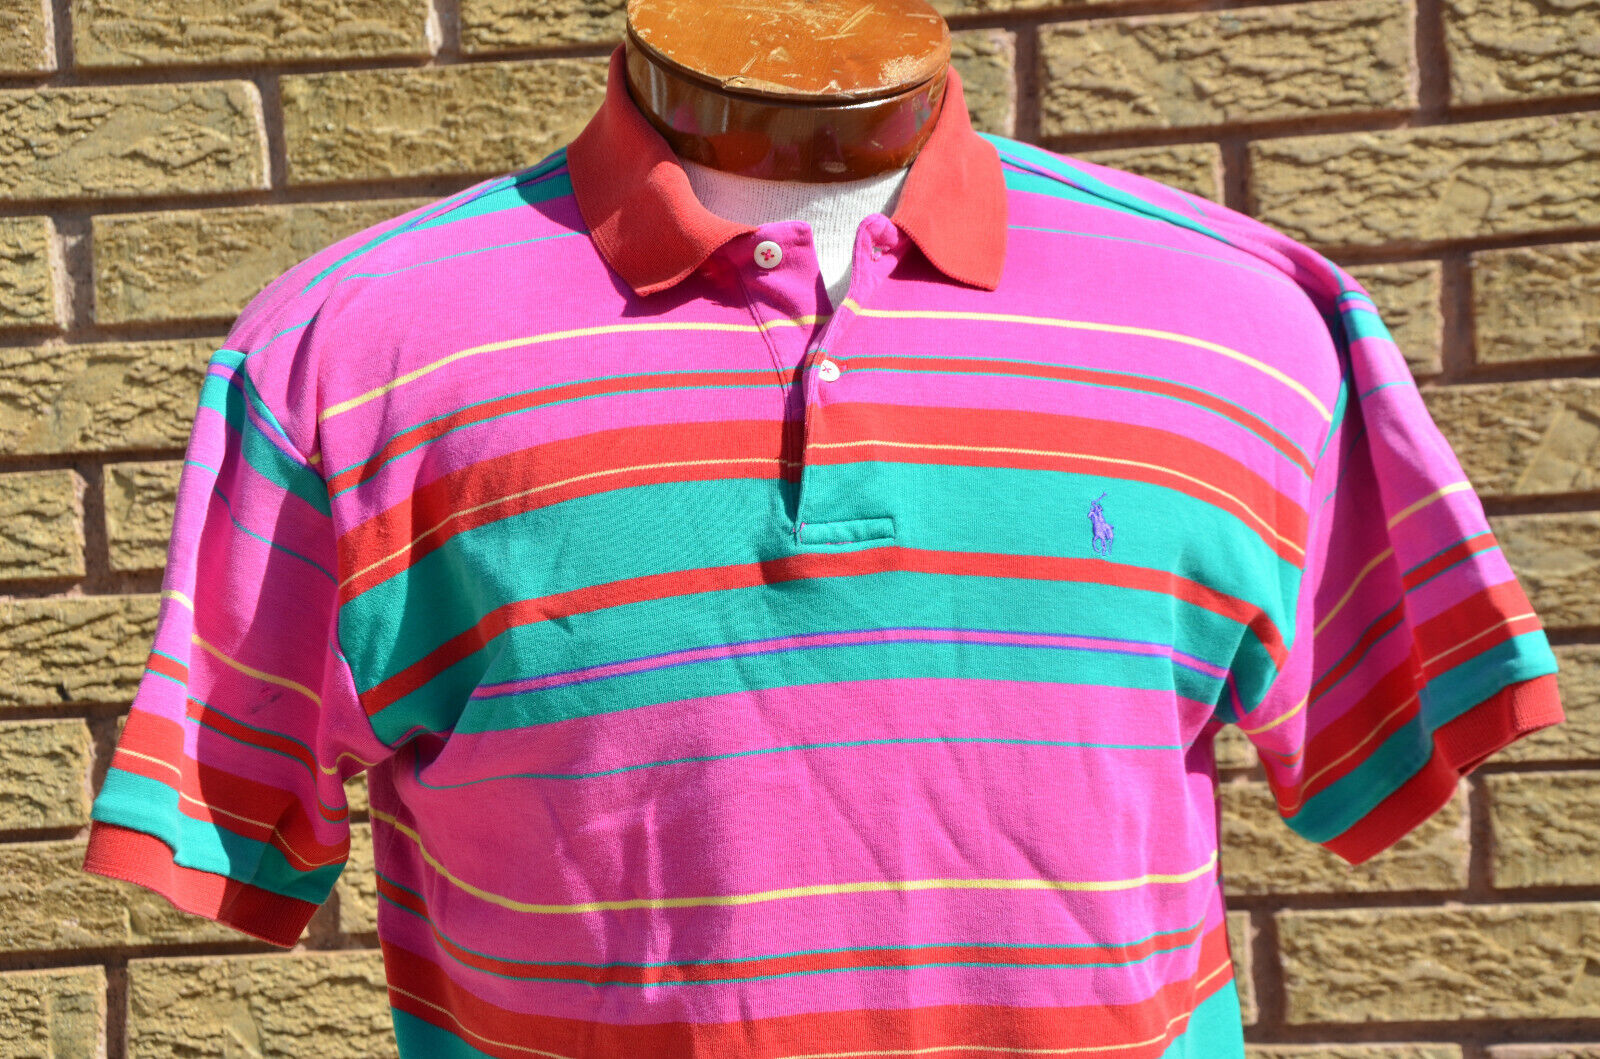 Vtg 80s 90s Neon Ralph Lauren Rugby Polo Shirt M/… - image 2